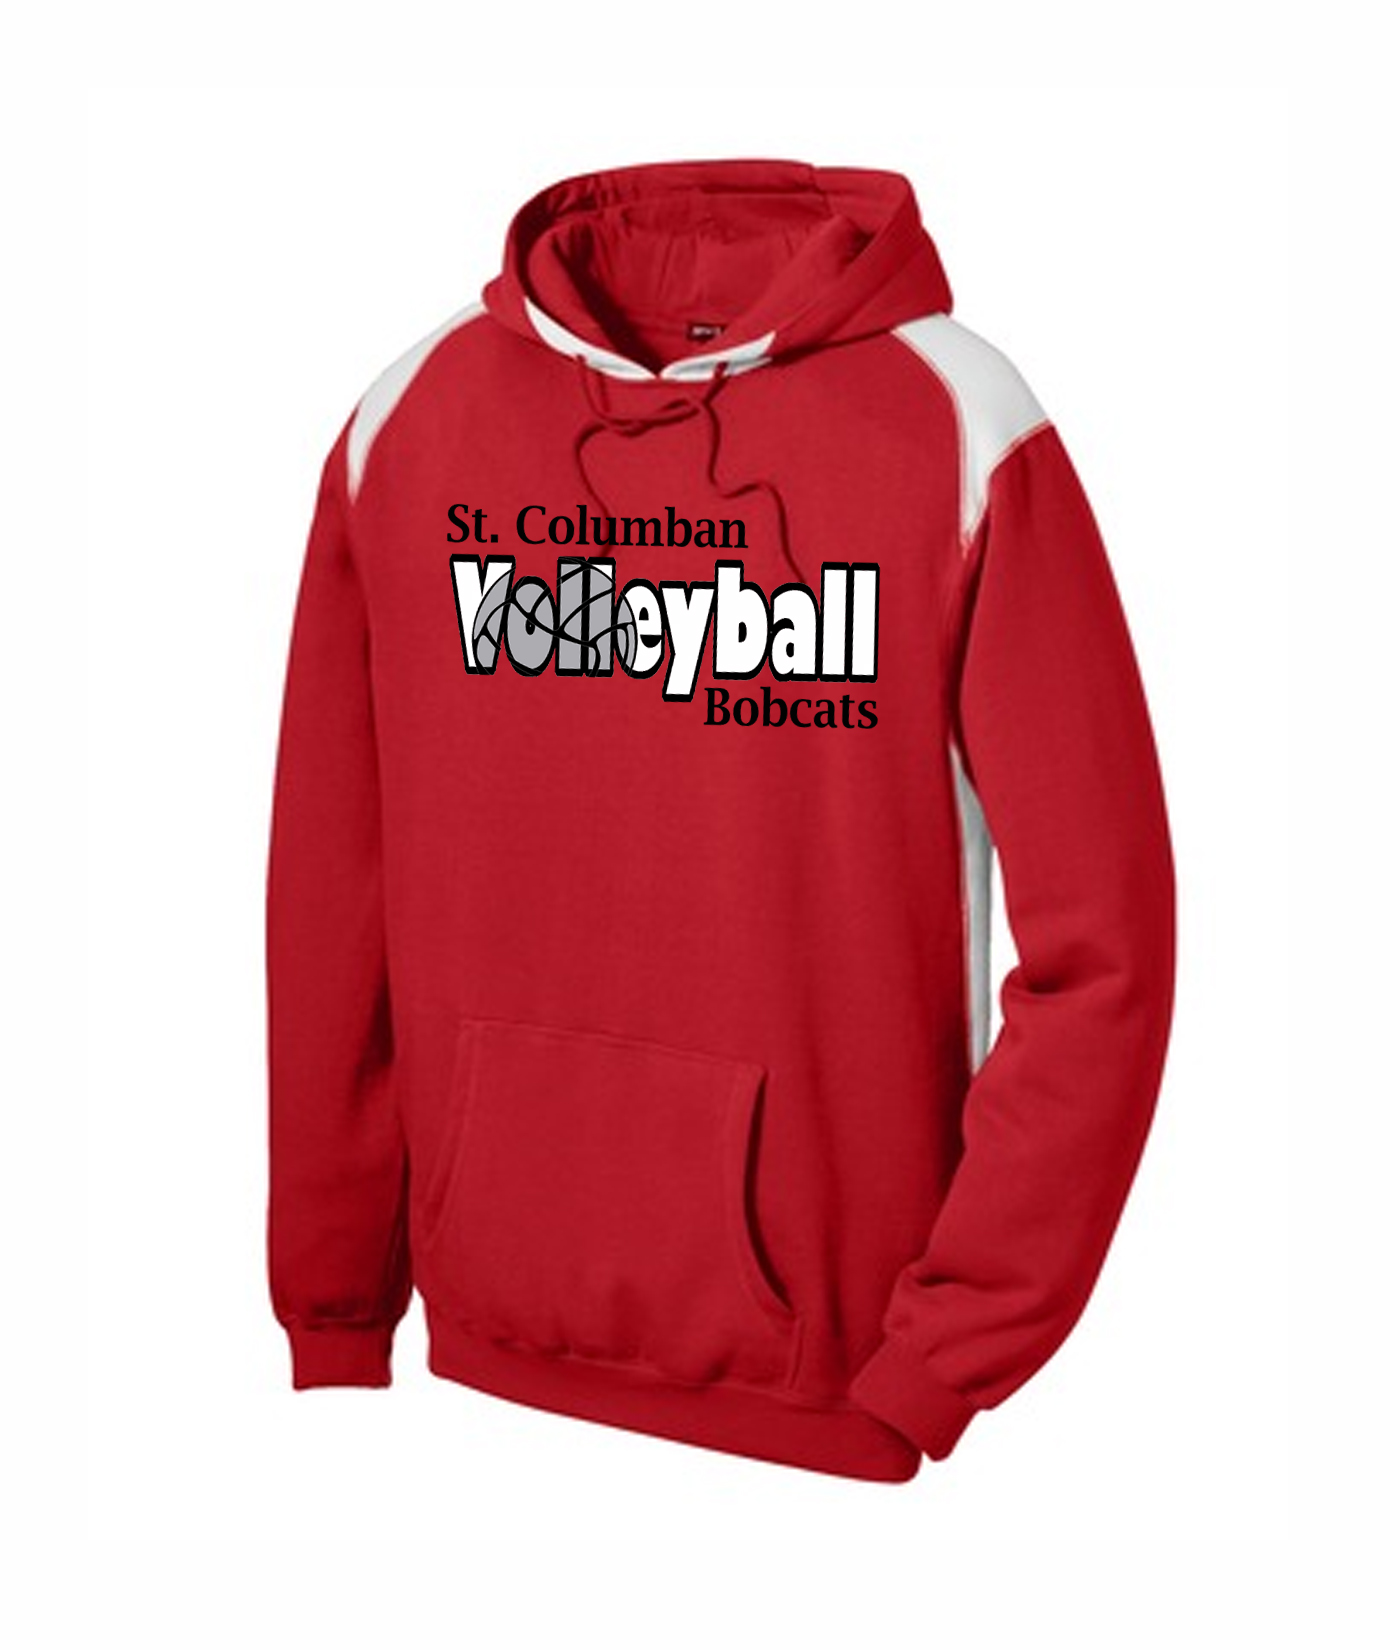 St. Columban Bobcats Volleyball Inside Red Multi Color Hoodie